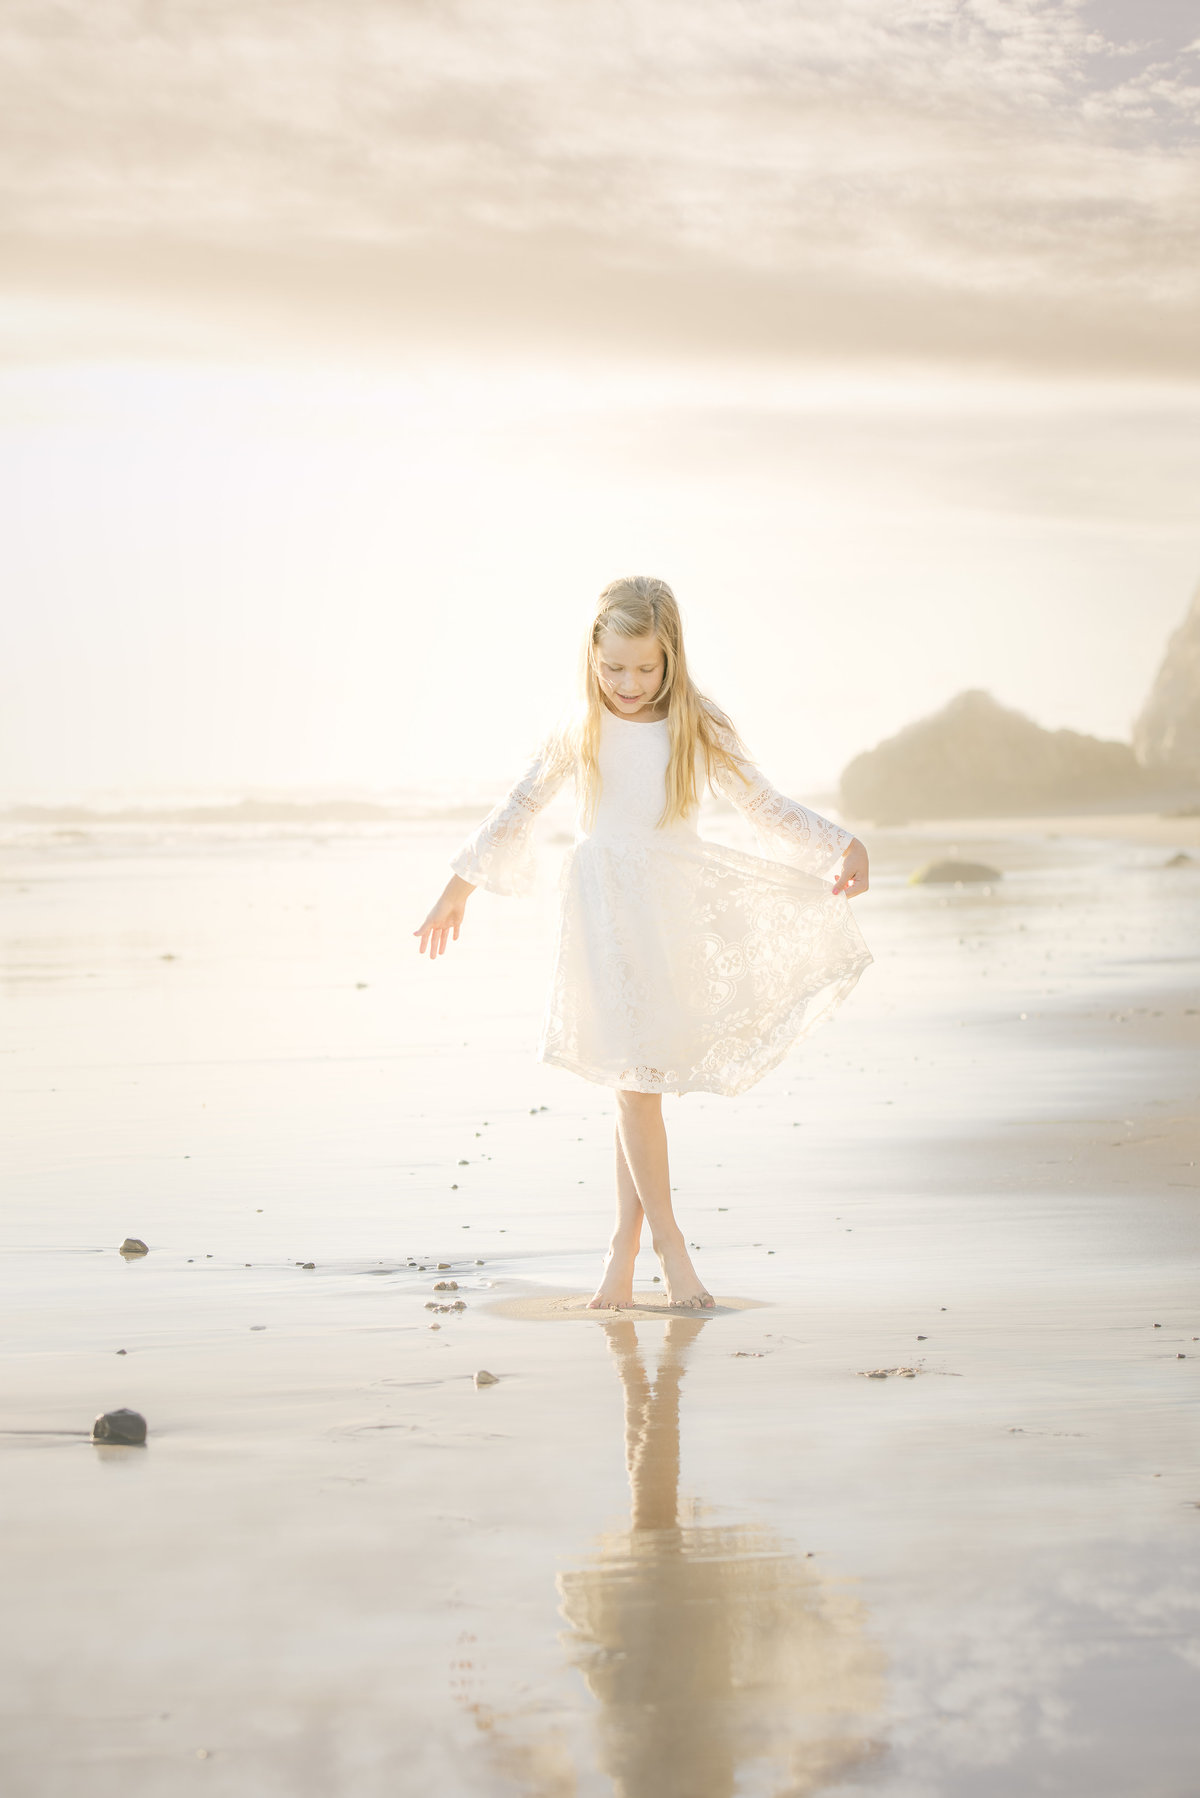 Trevor Morrison children photography, family photography, wedding photography, Ventura County